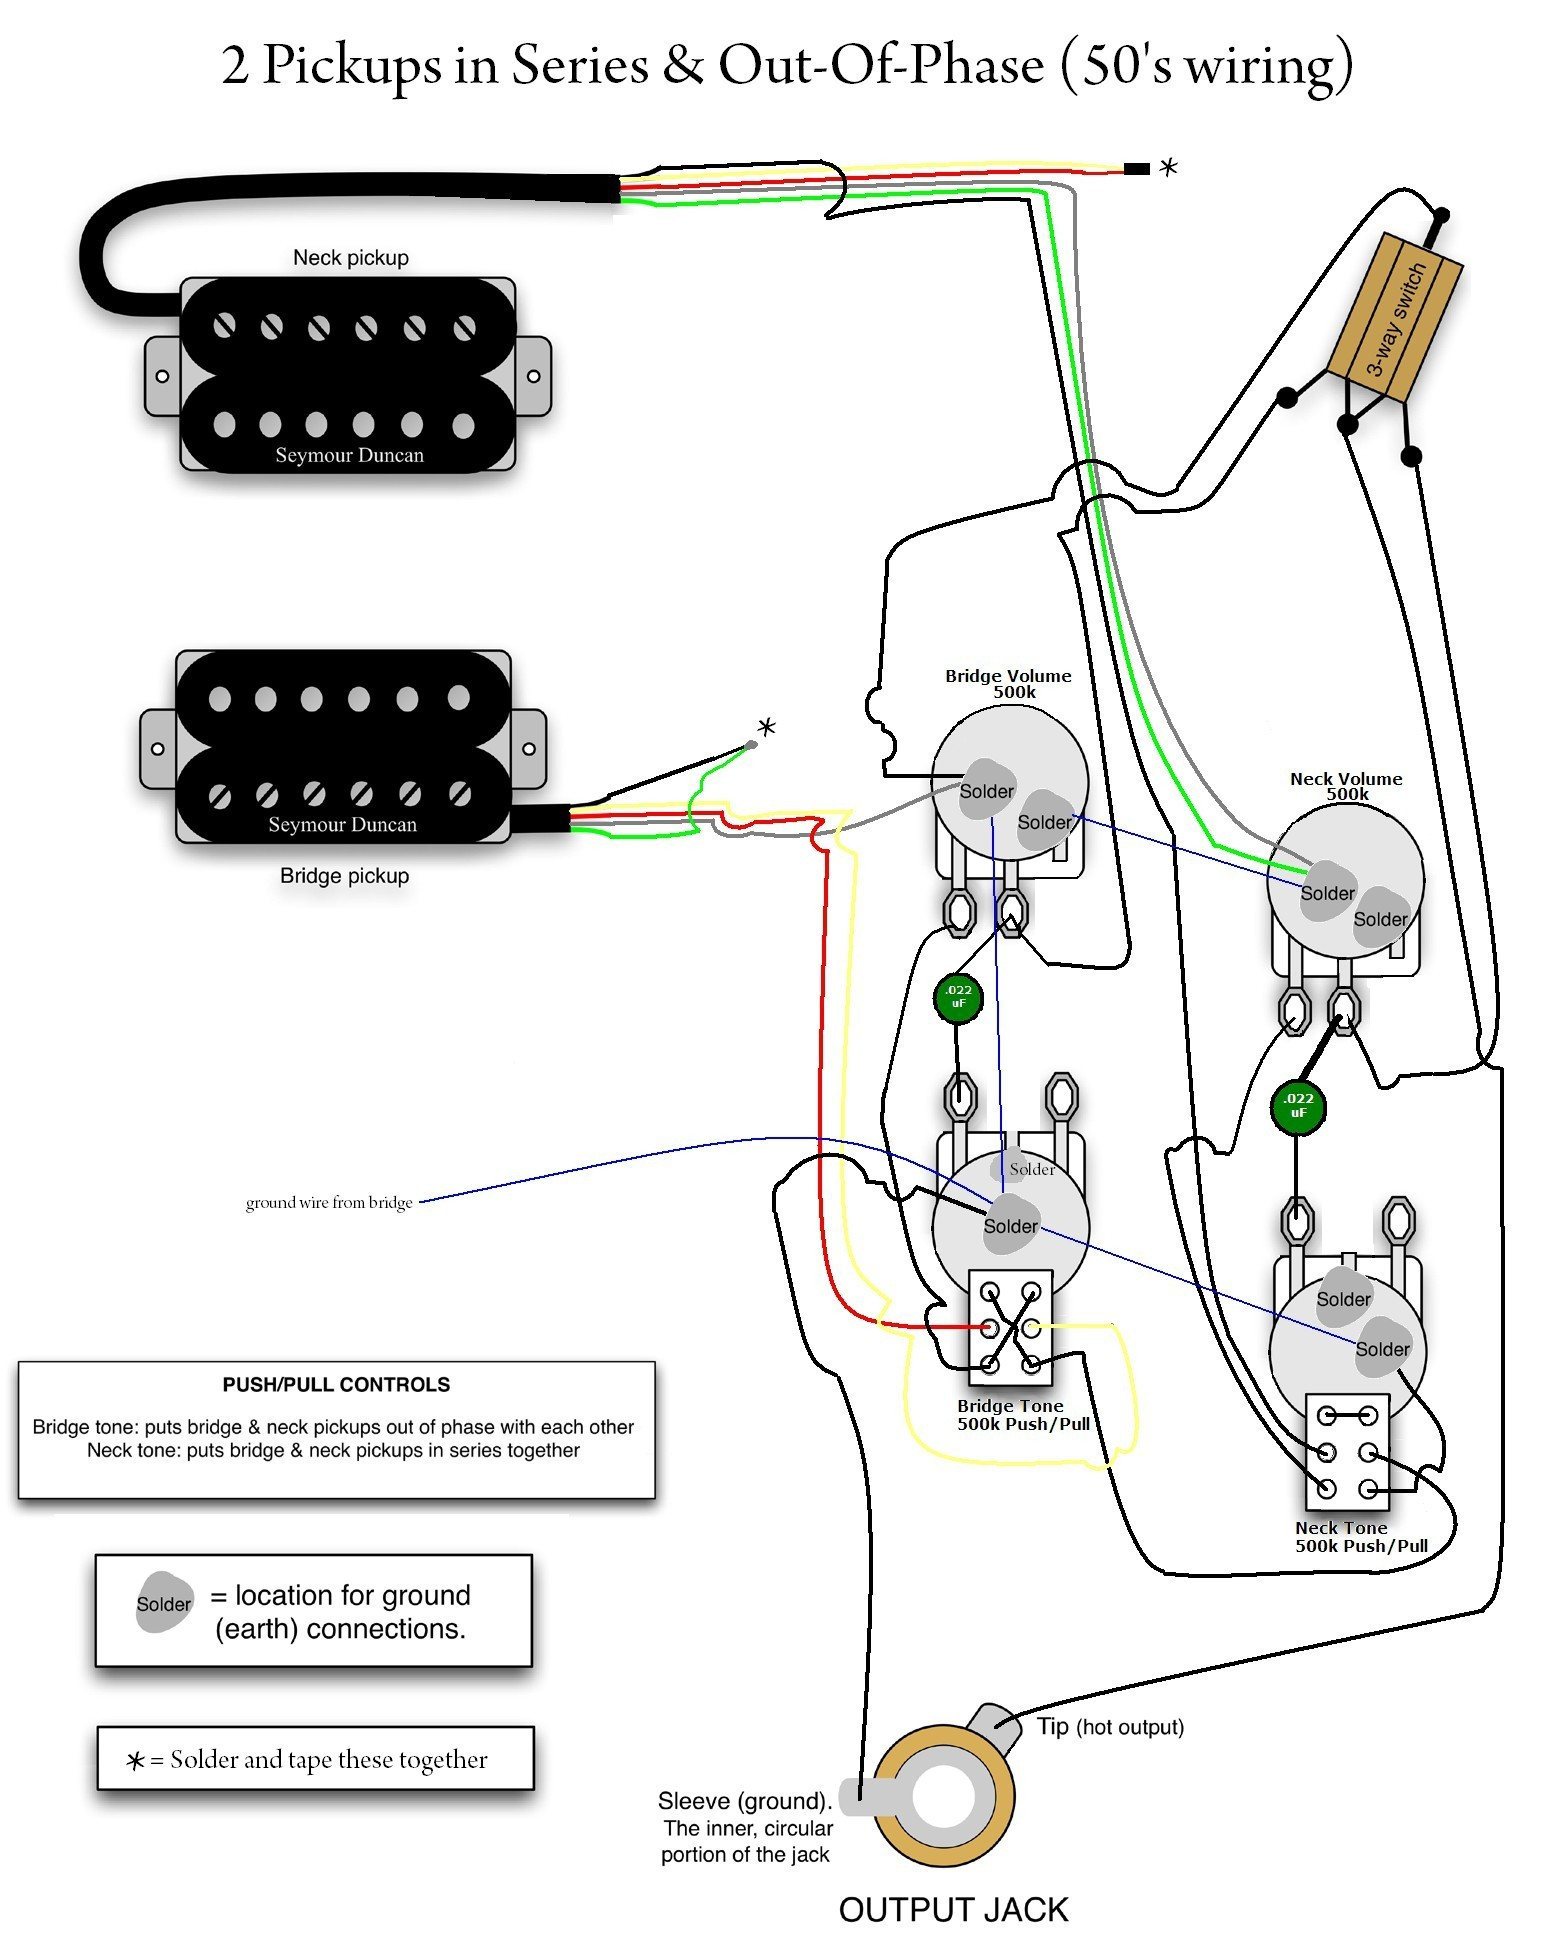 gibson 57 classic 4 conductor wiring diagram Download-wiring diagrams for gibson guitars refrence wiring schematic for rh kobecityinfo gibson guitar pickup wiring 16-t